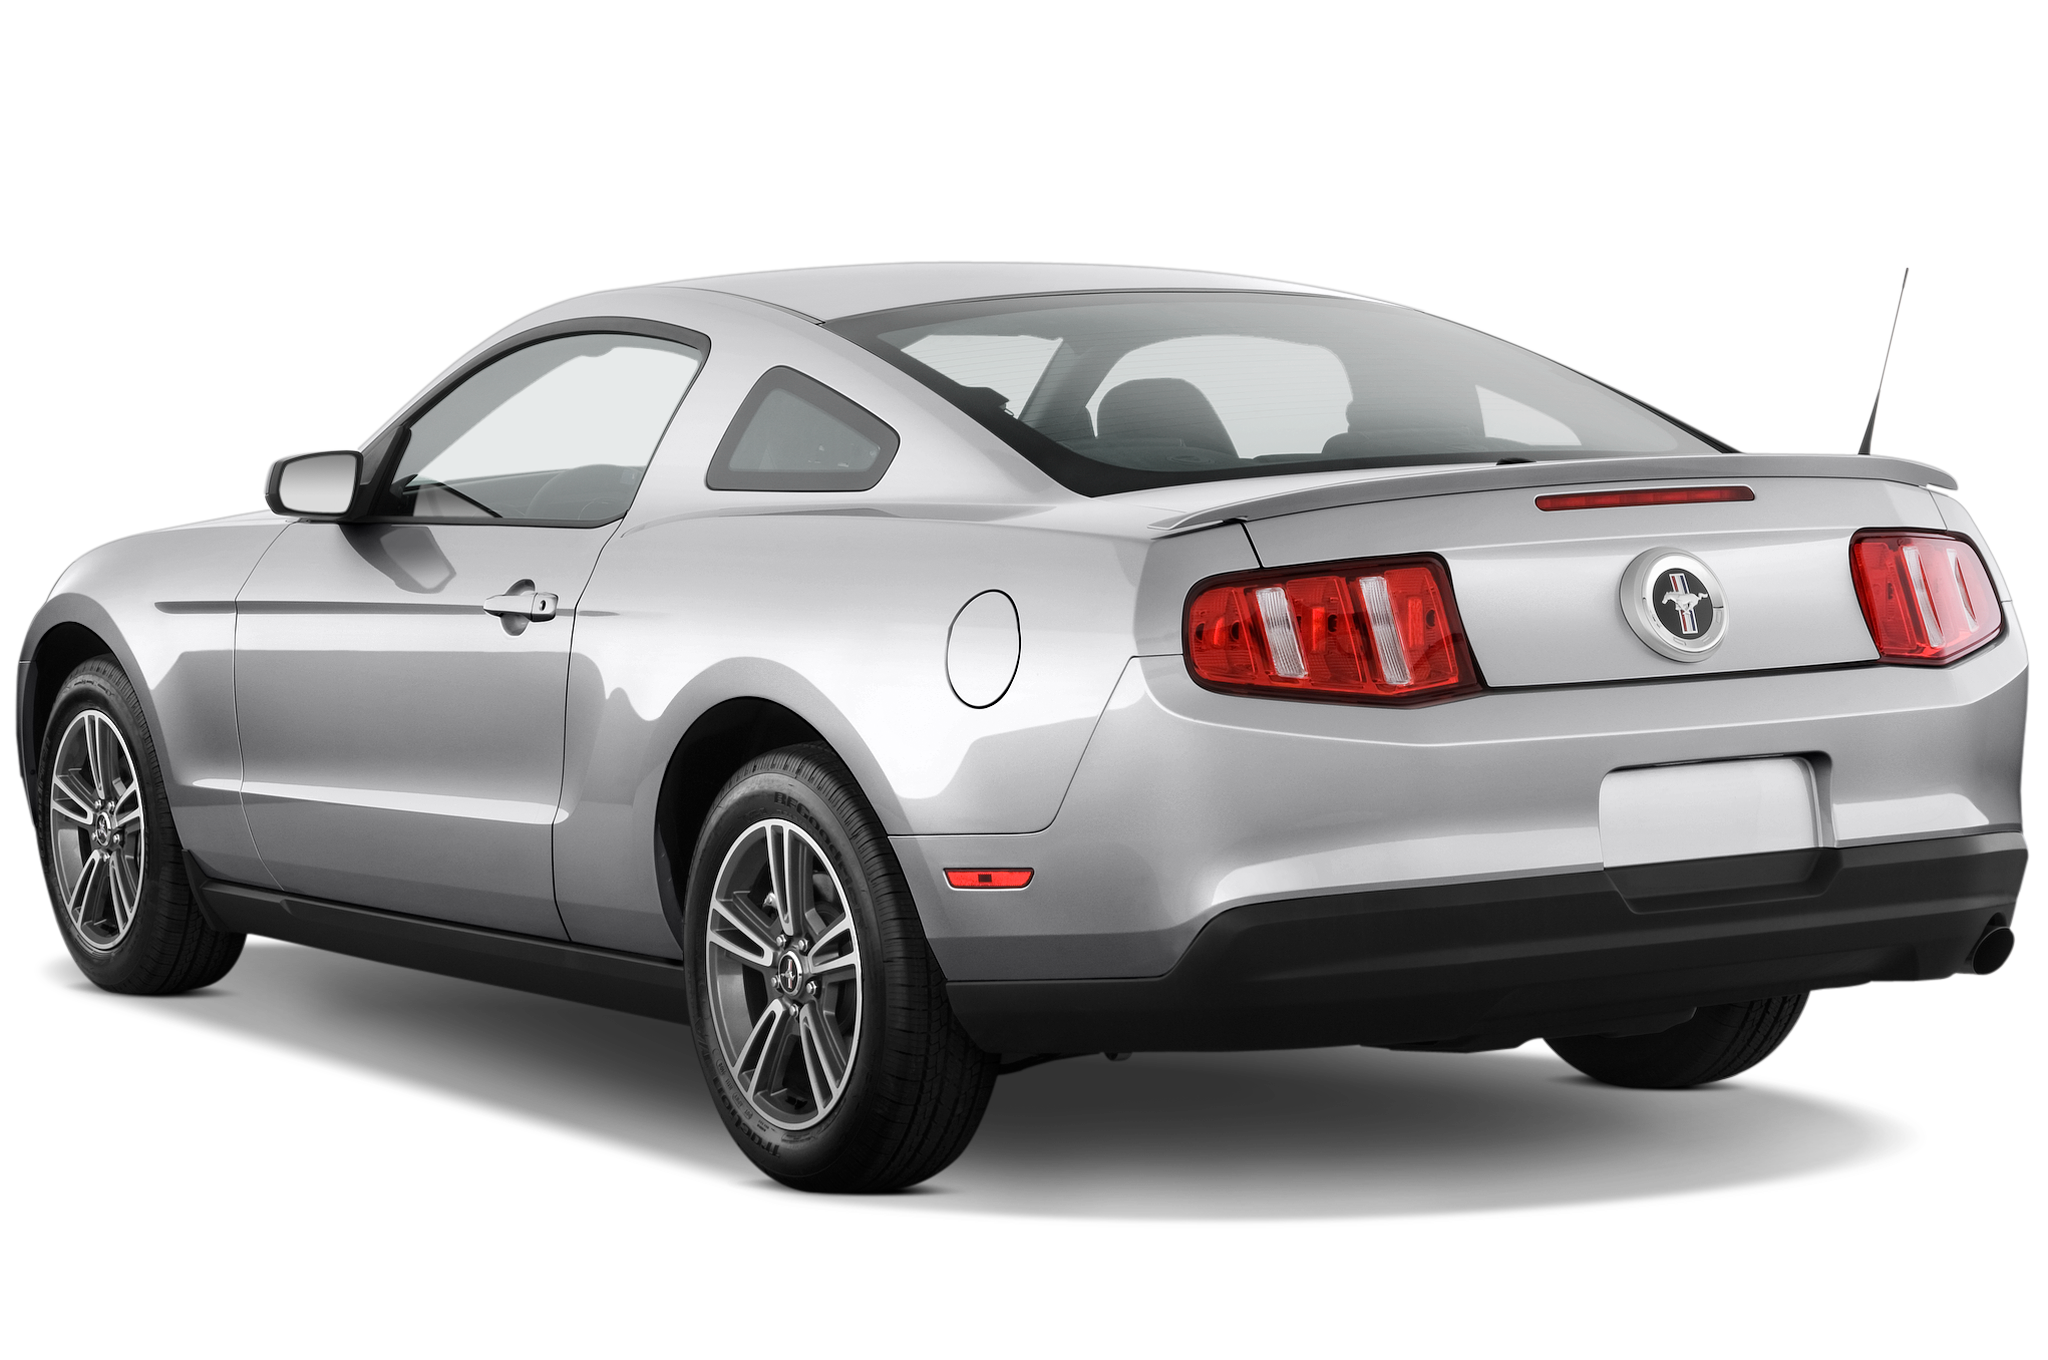 2010 roush mustang 427r ford sport coupe review. Black Bedroom Furniture Sets. Home Design Ideas